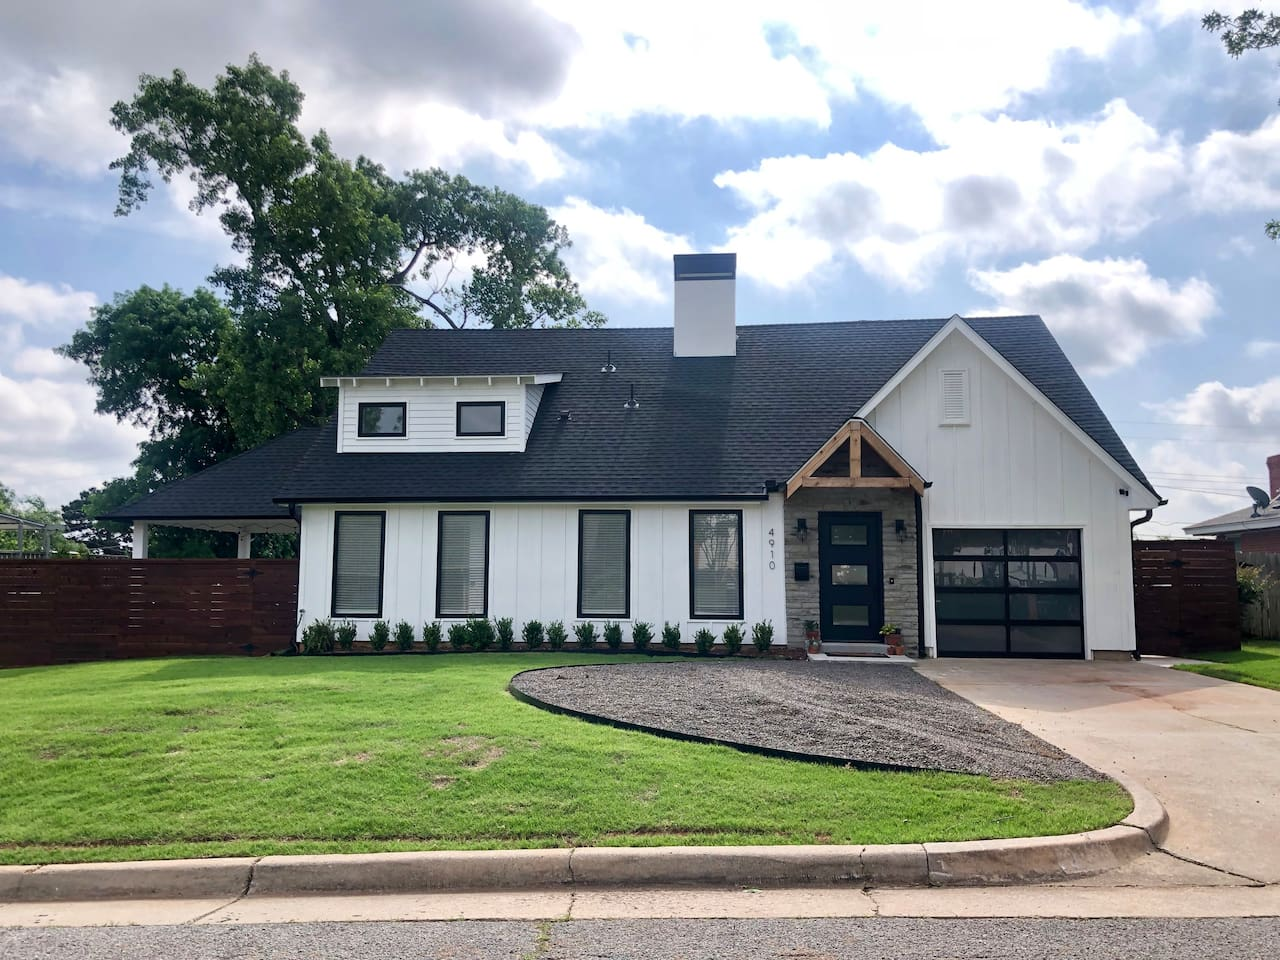 Beautiful modern farmhouse with ample parking.